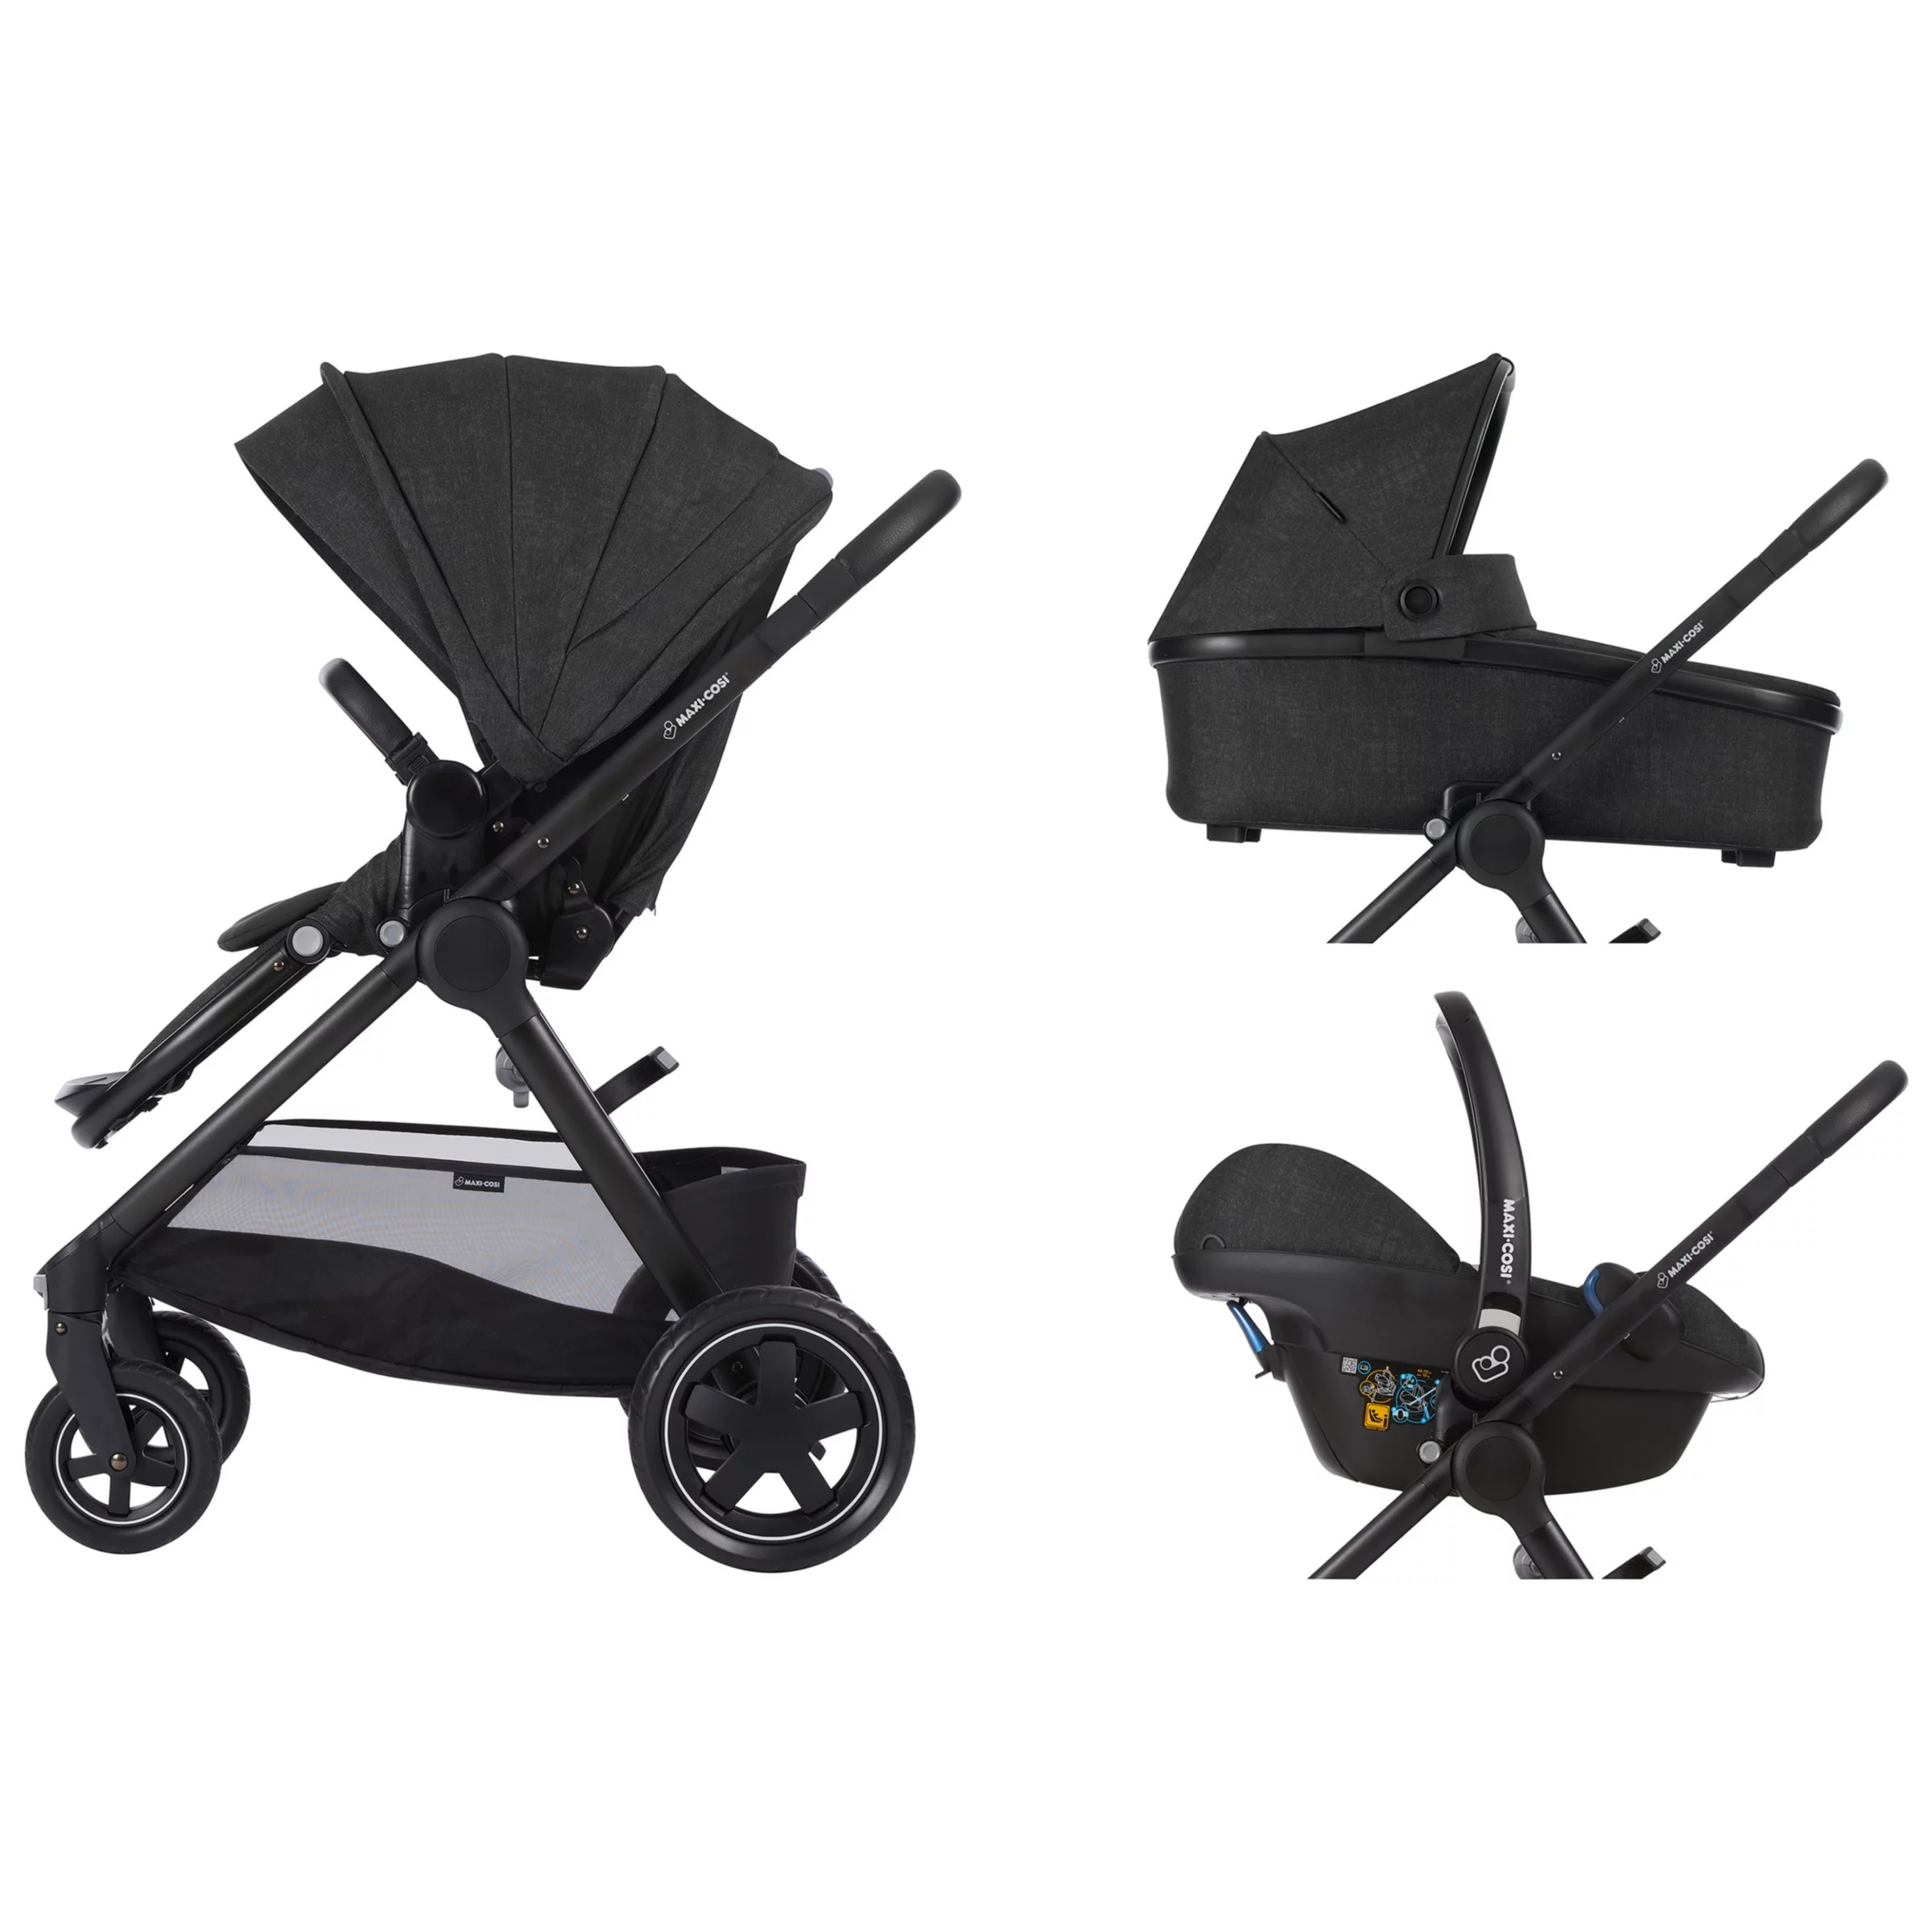 Maxi-cosi Adorra Travel System - Graphic Flower Maxi Cosi Adorra Pushchair Nomad Black